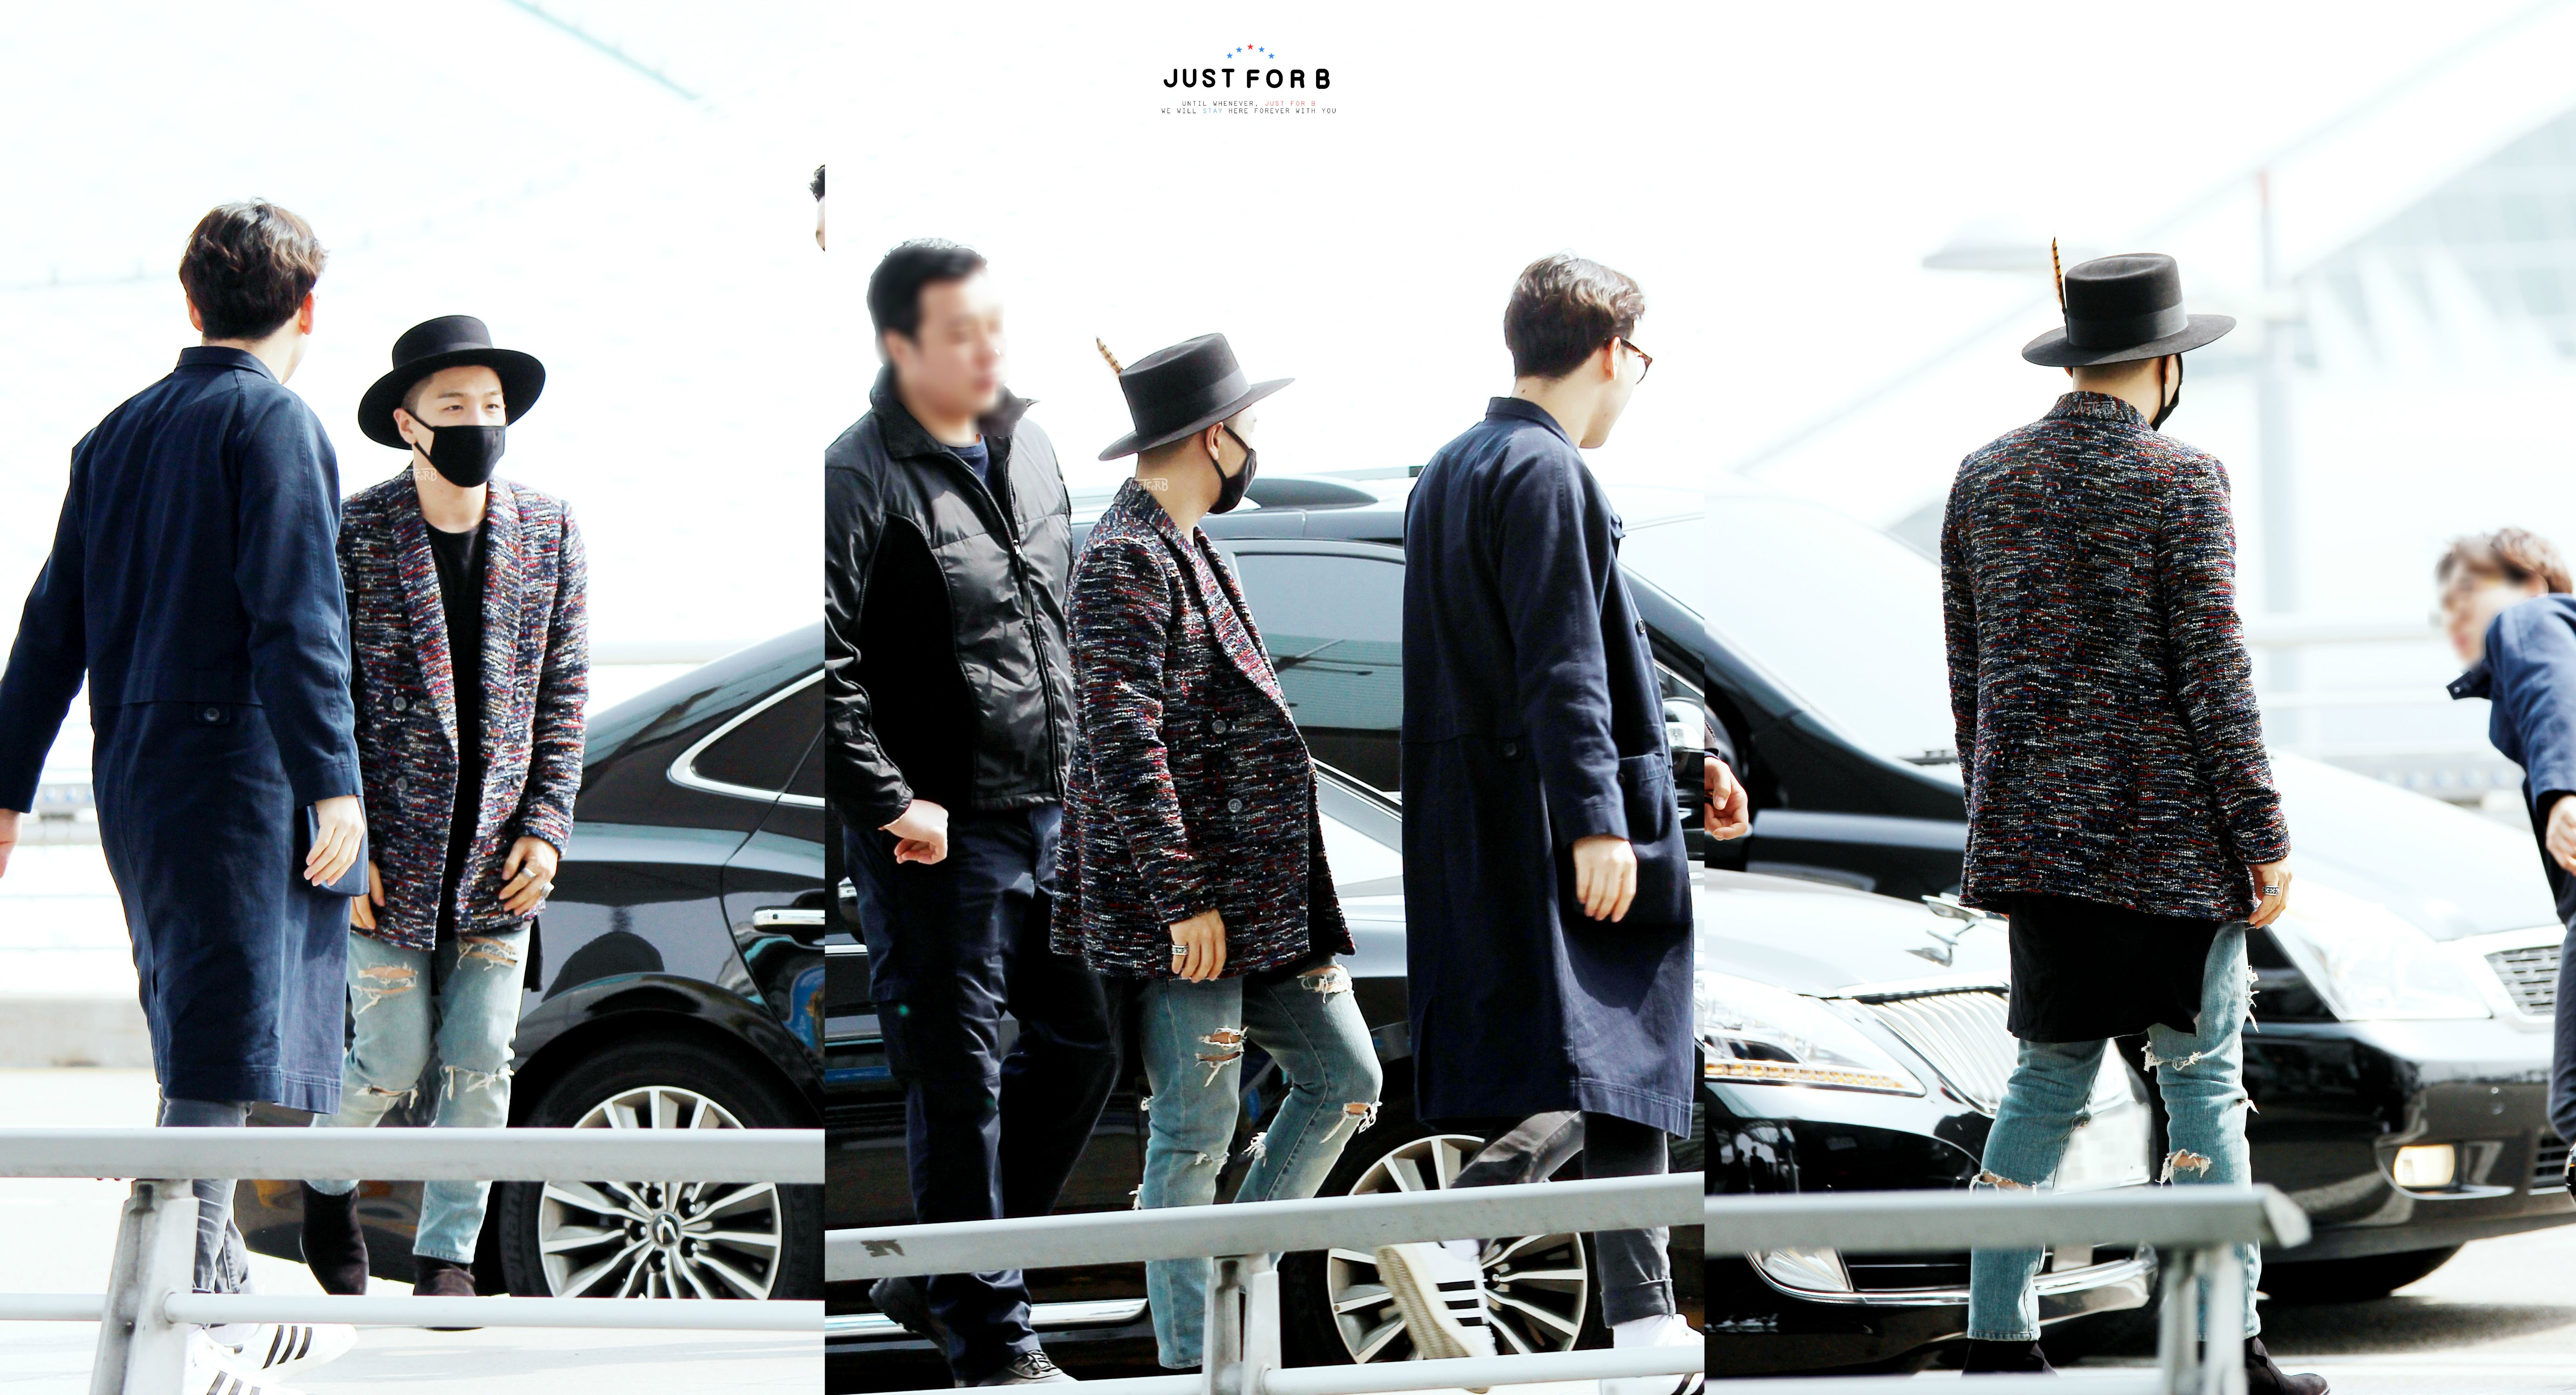 BIGBANG - Incheon Airport - 21mar2015 - Tae Yang - Just_for_BB - 04.jpg